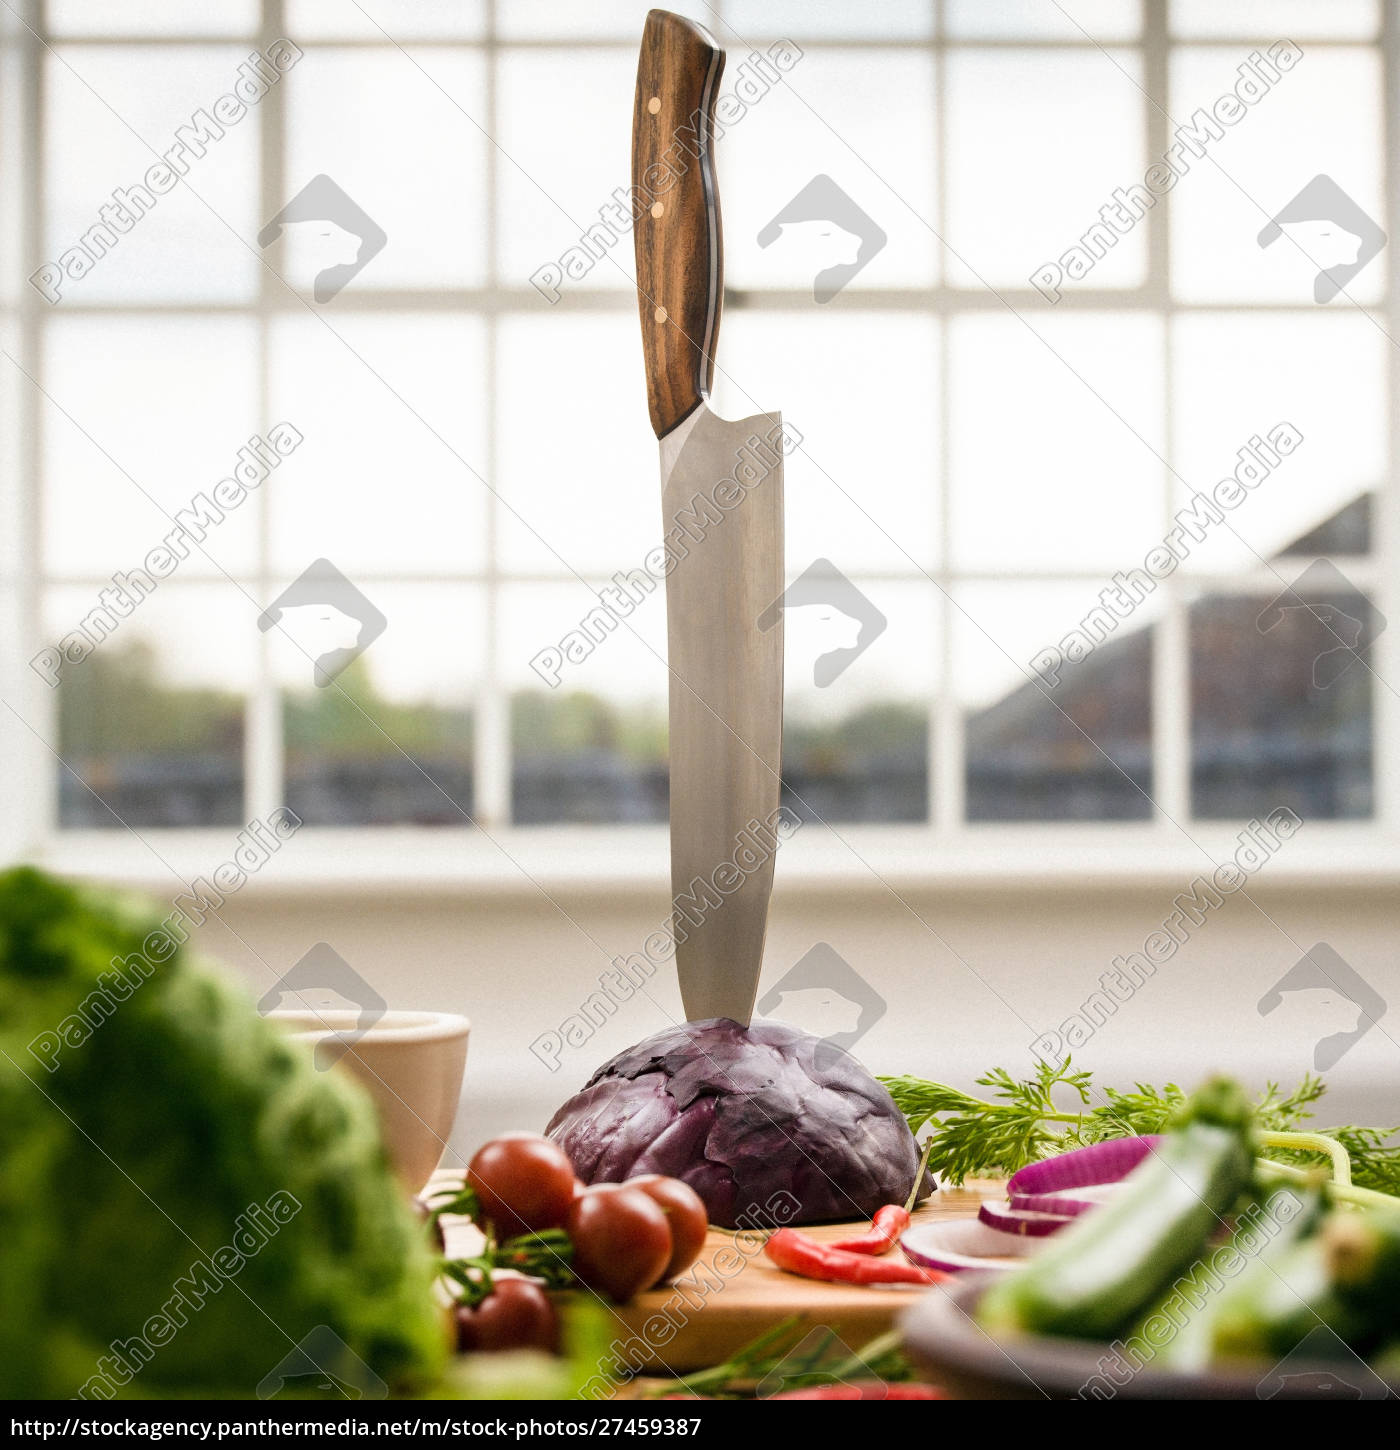 kitchen, knife, stuck, in, red, cabbage - 27459387